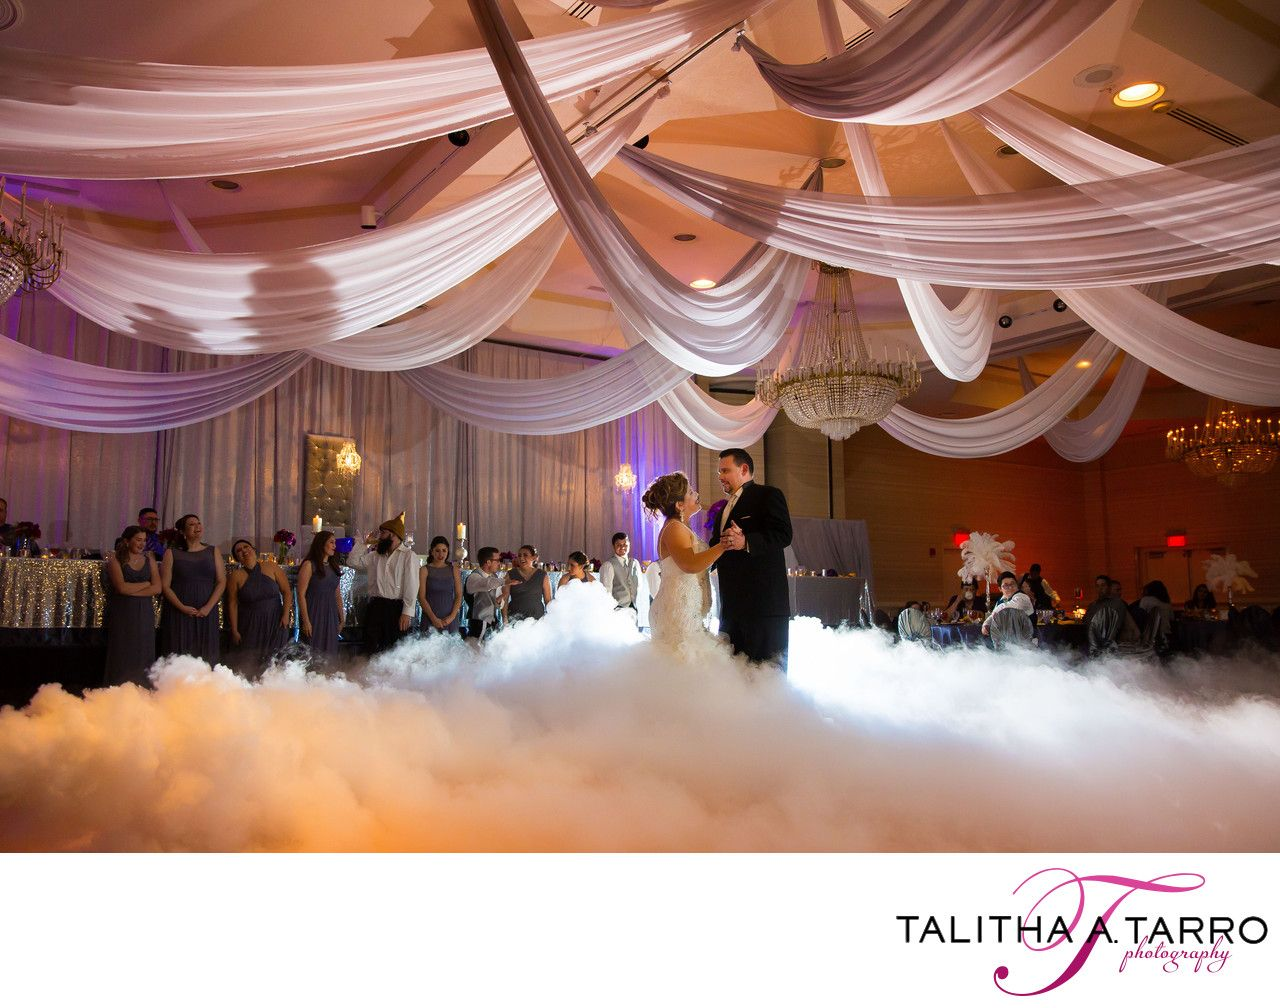 Dancing On Clouds Fog Machine At Wedding Reception Dance Floor Unique